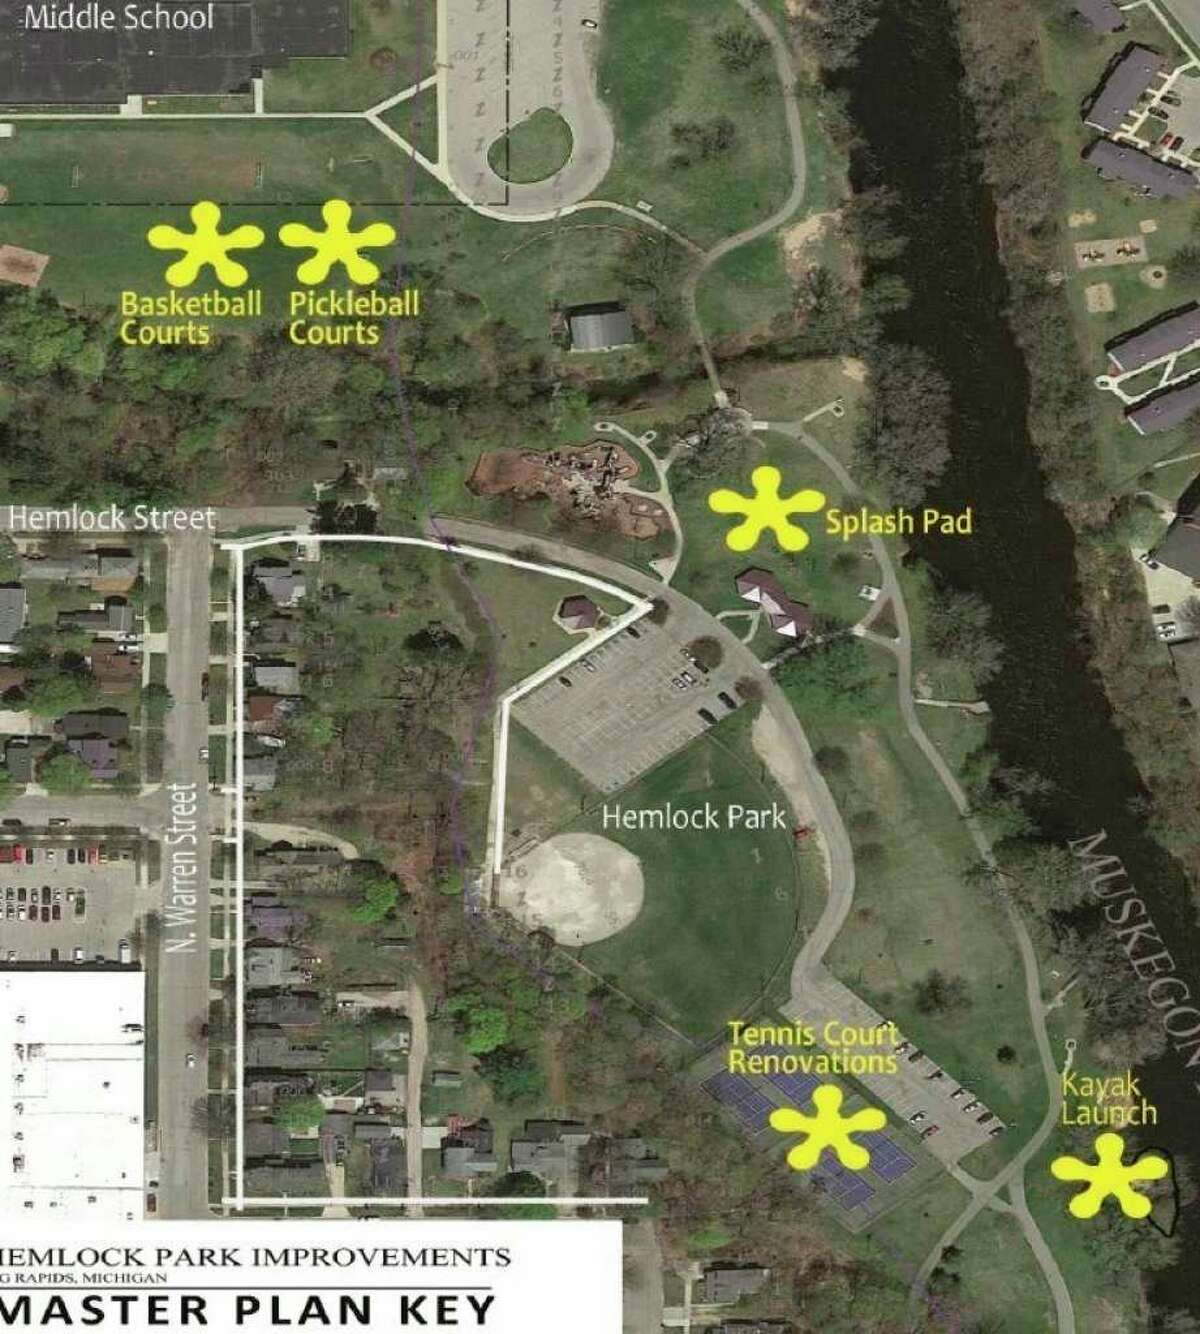 The highly-anticipated improvements at Hemlock Park in Big Rapids may not begin this summer as planned.